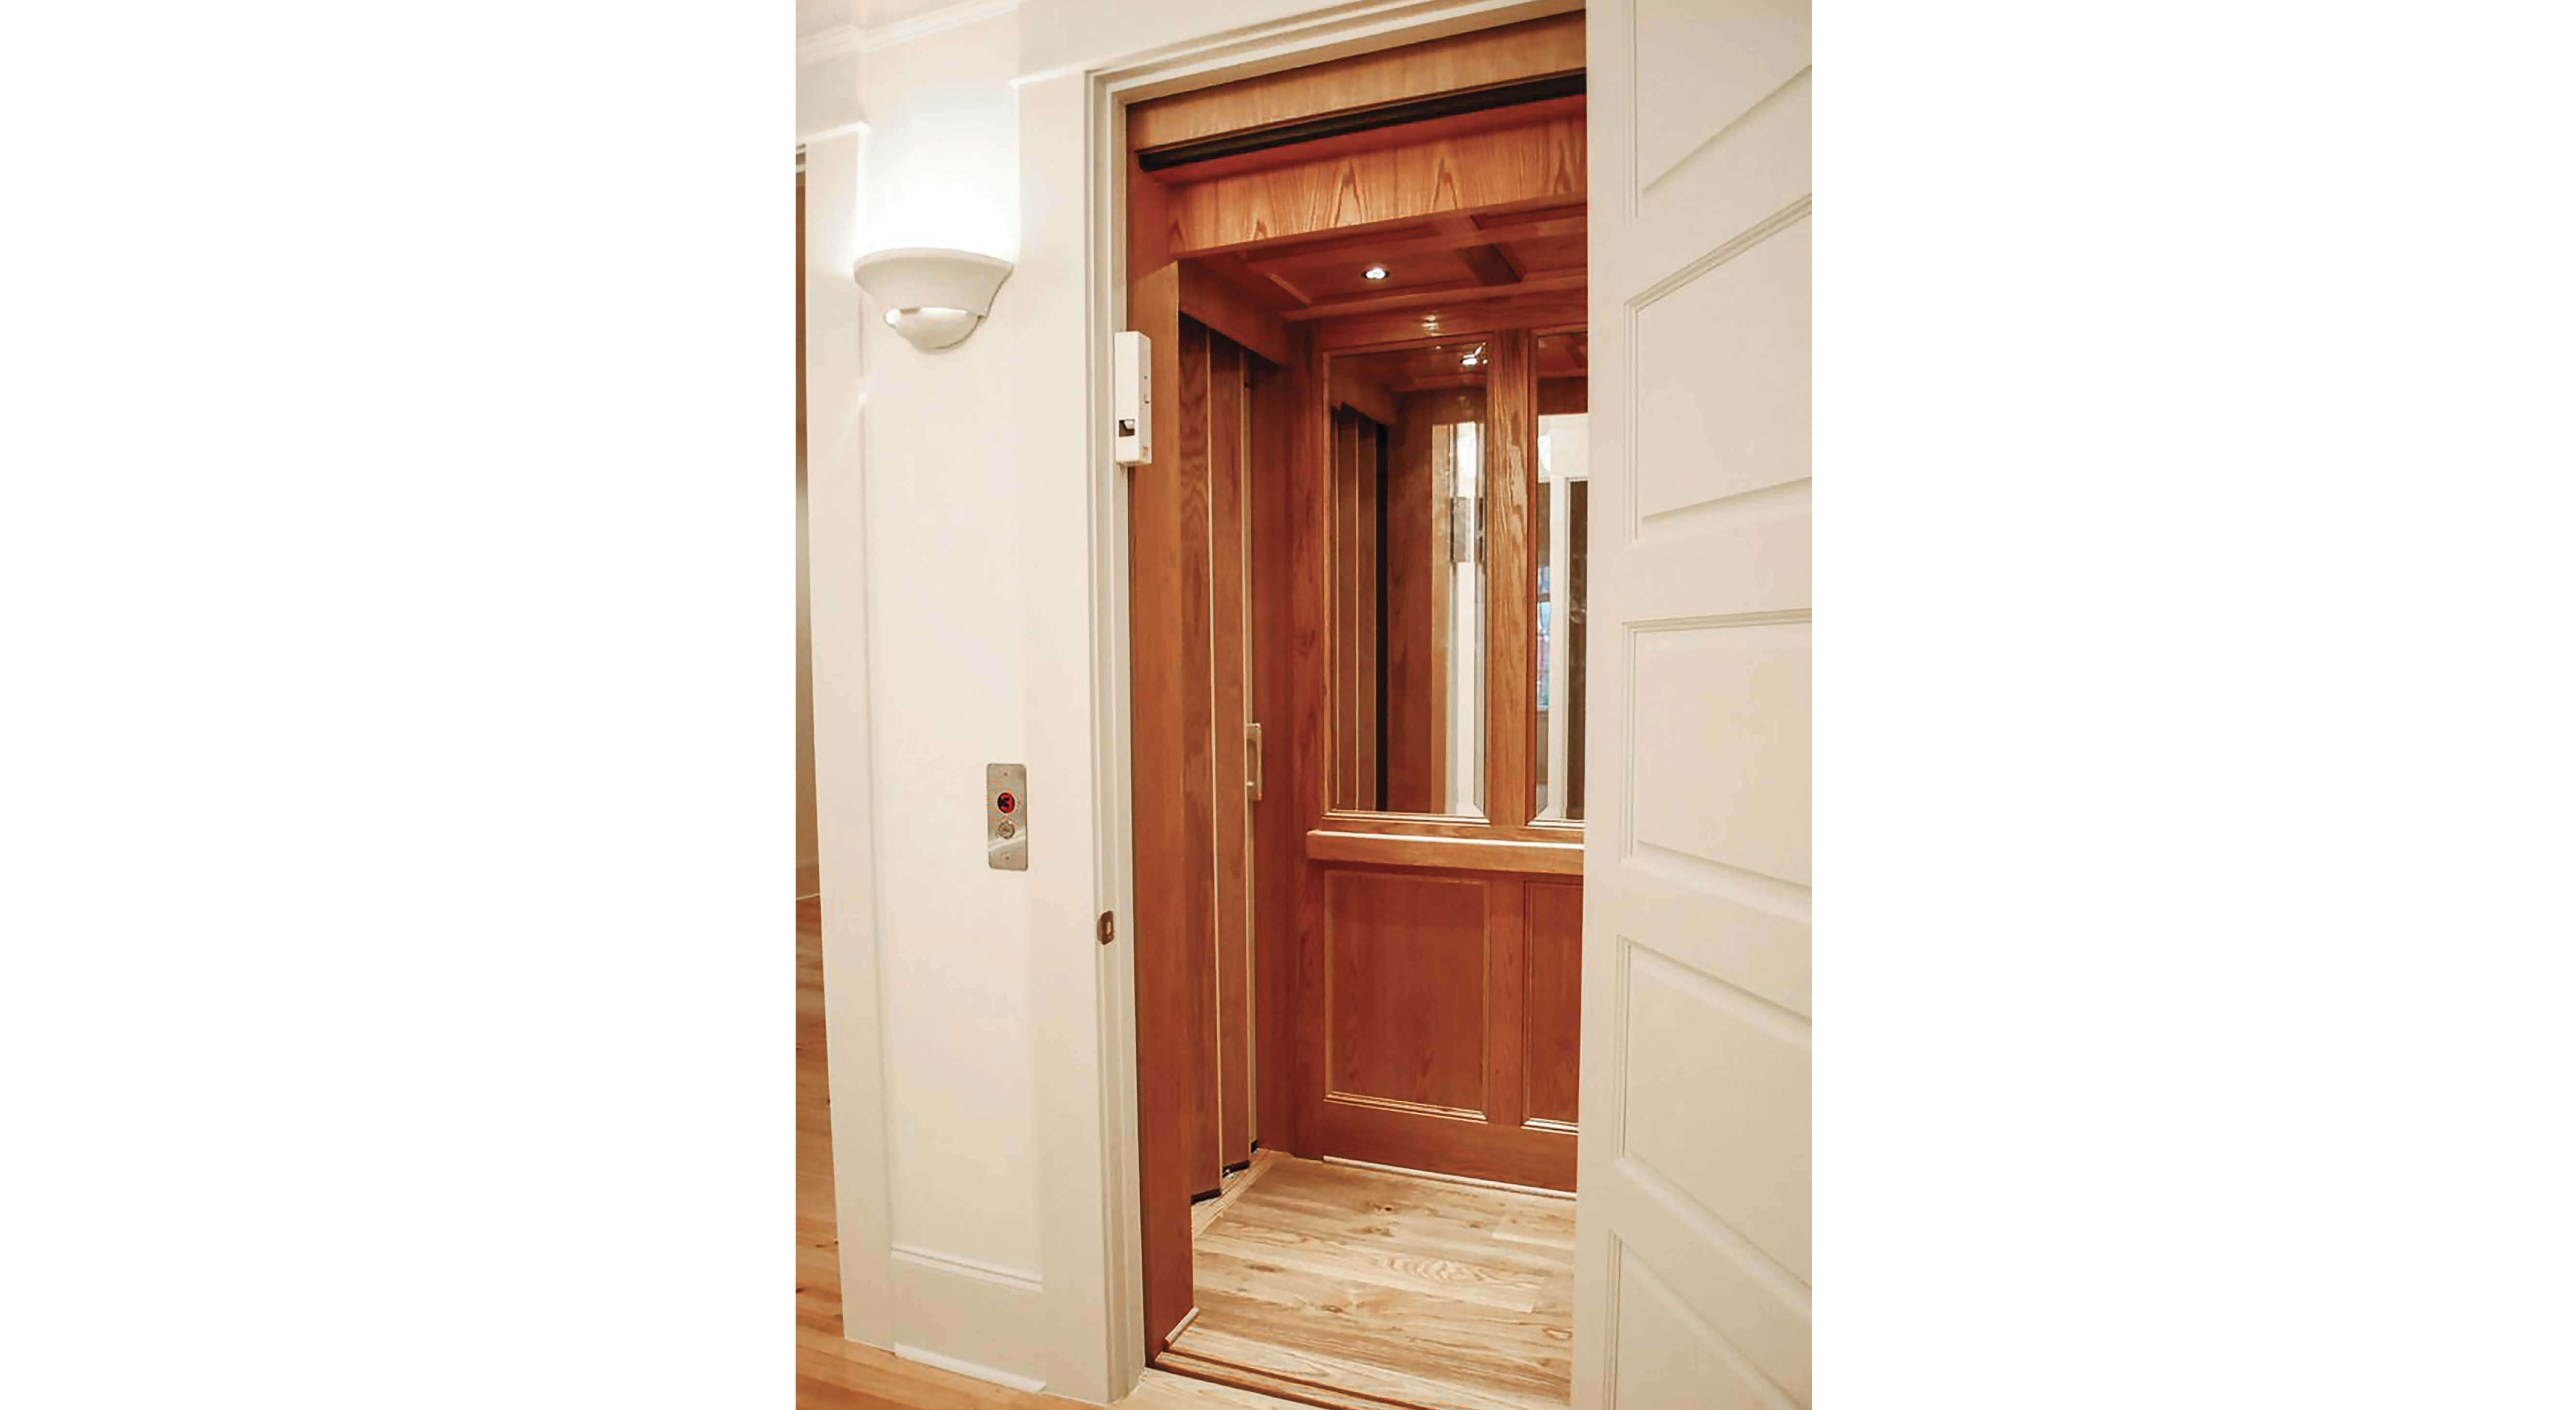 How To Ensure Friends and Family Enjoy Your Home Elevator Safely